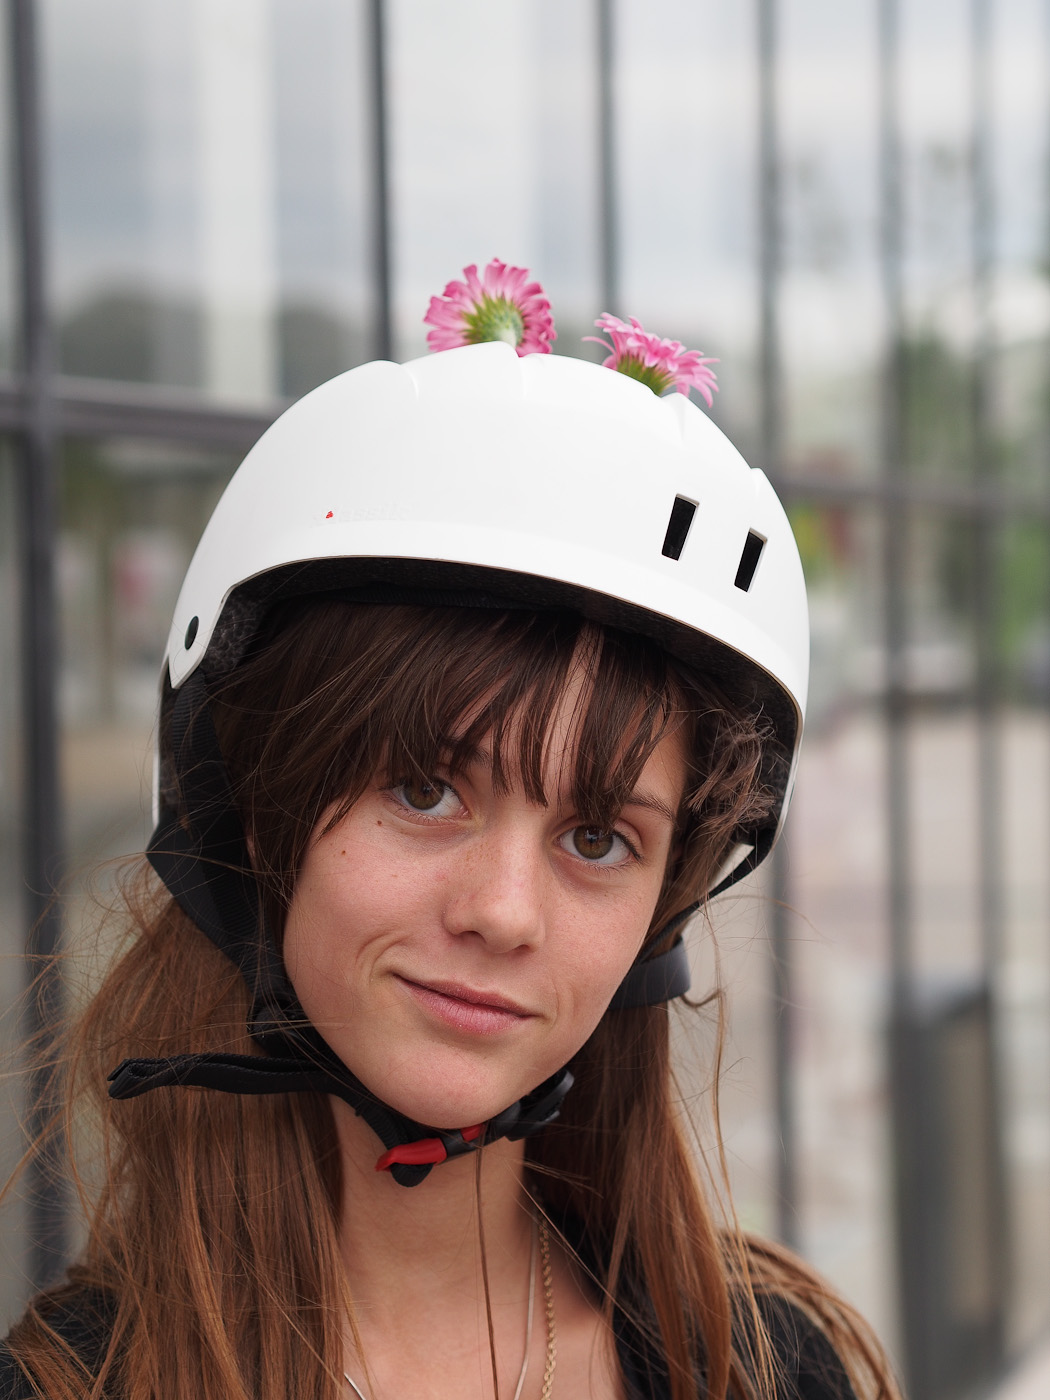 A young rollerskater girl has flowers sticking out of her helmet. Olympus OM-D E-M5 & Olympus Digital Zuiko 45mm f1.8